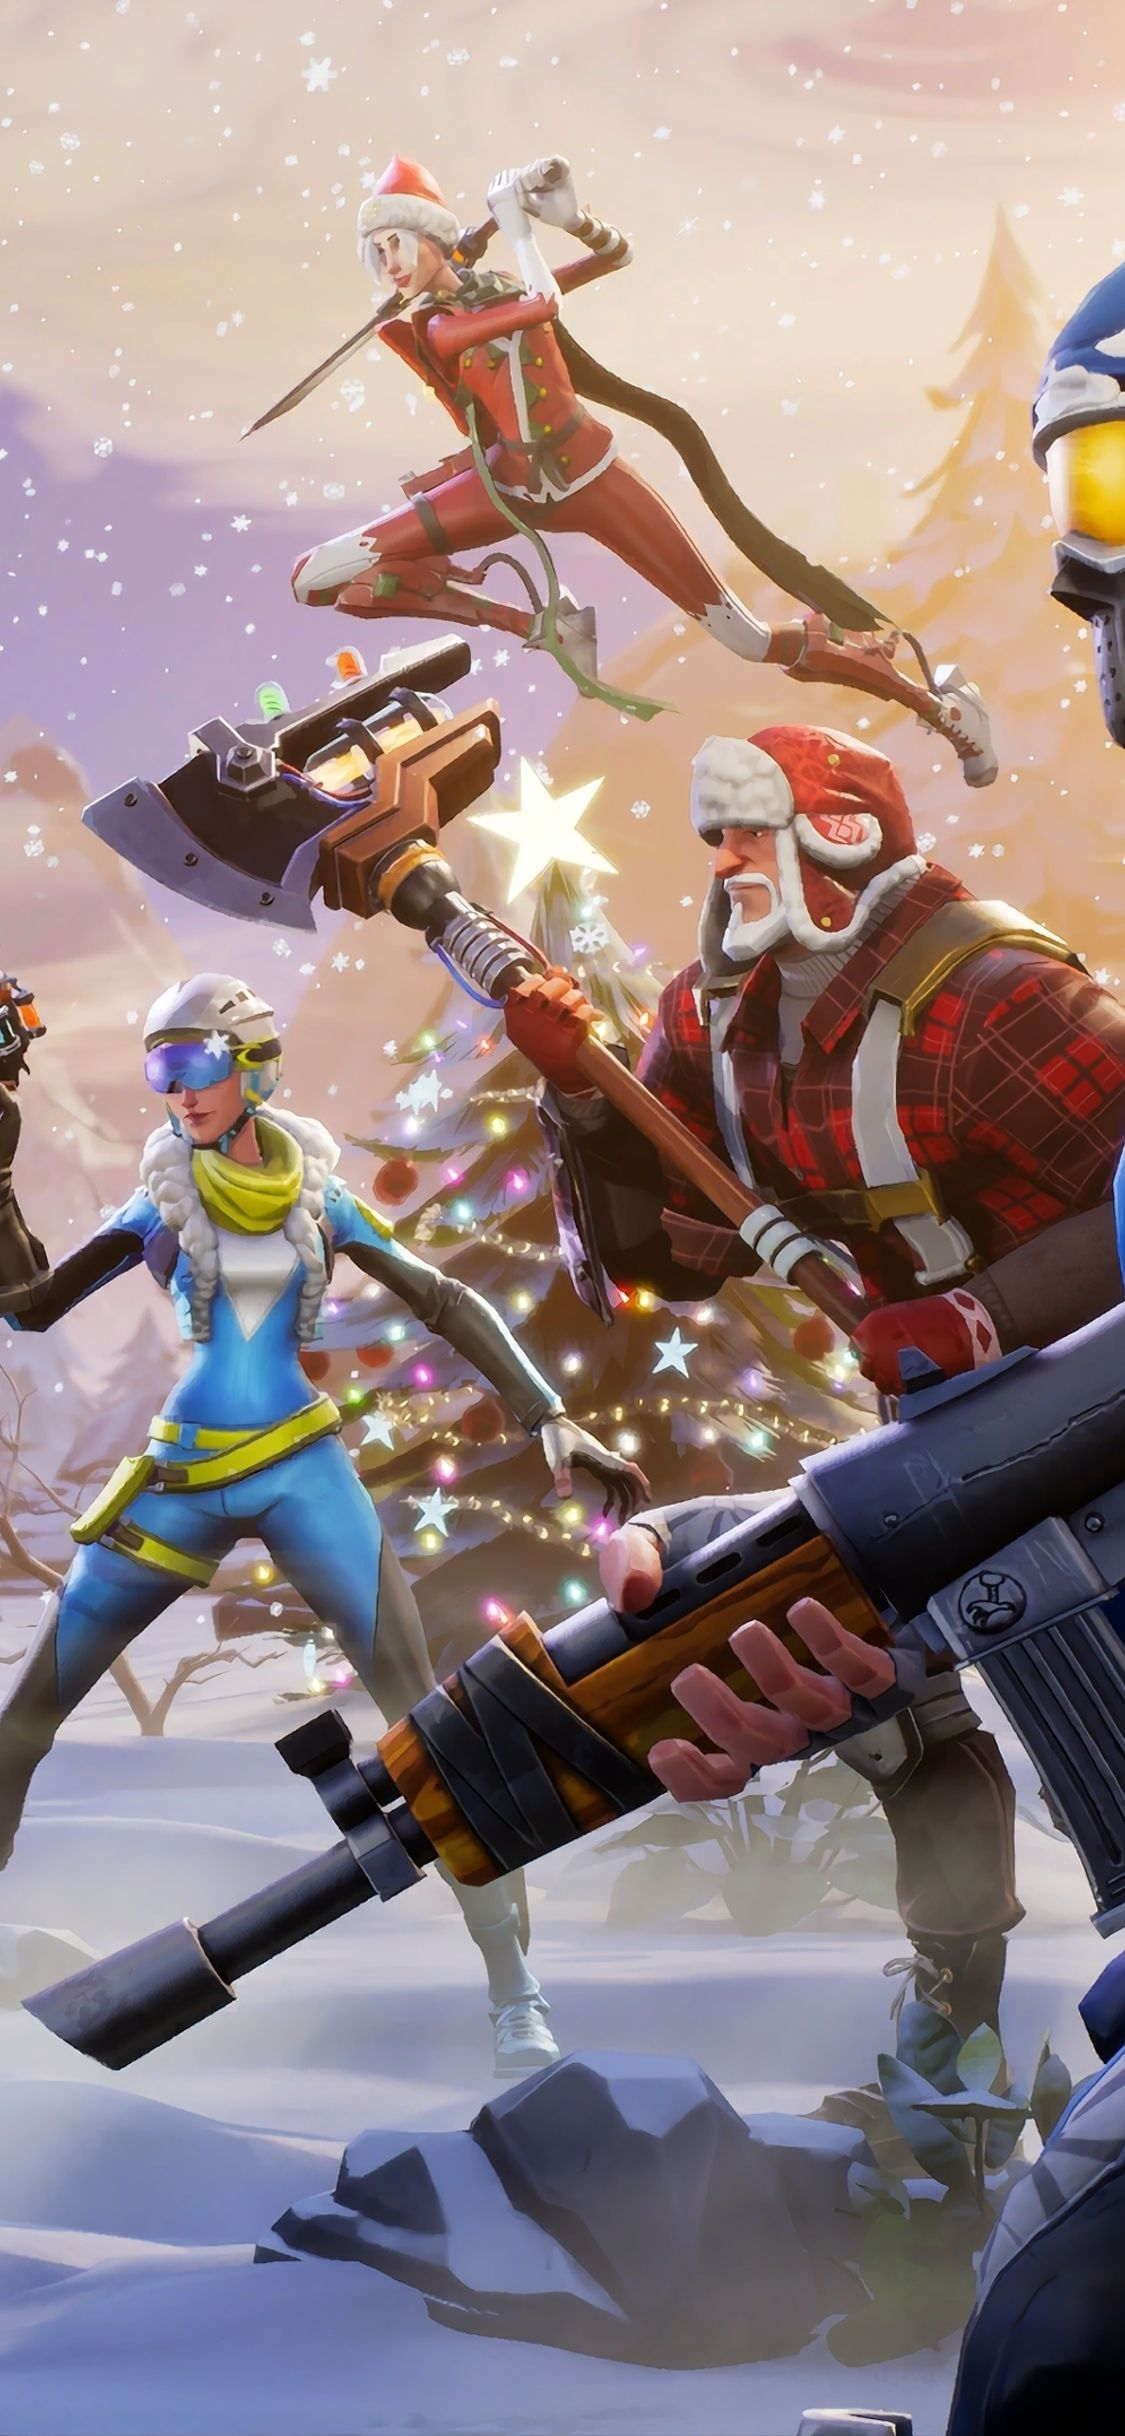 Fortnite Iphone Wallpapers Top Free Fortnite Iphone